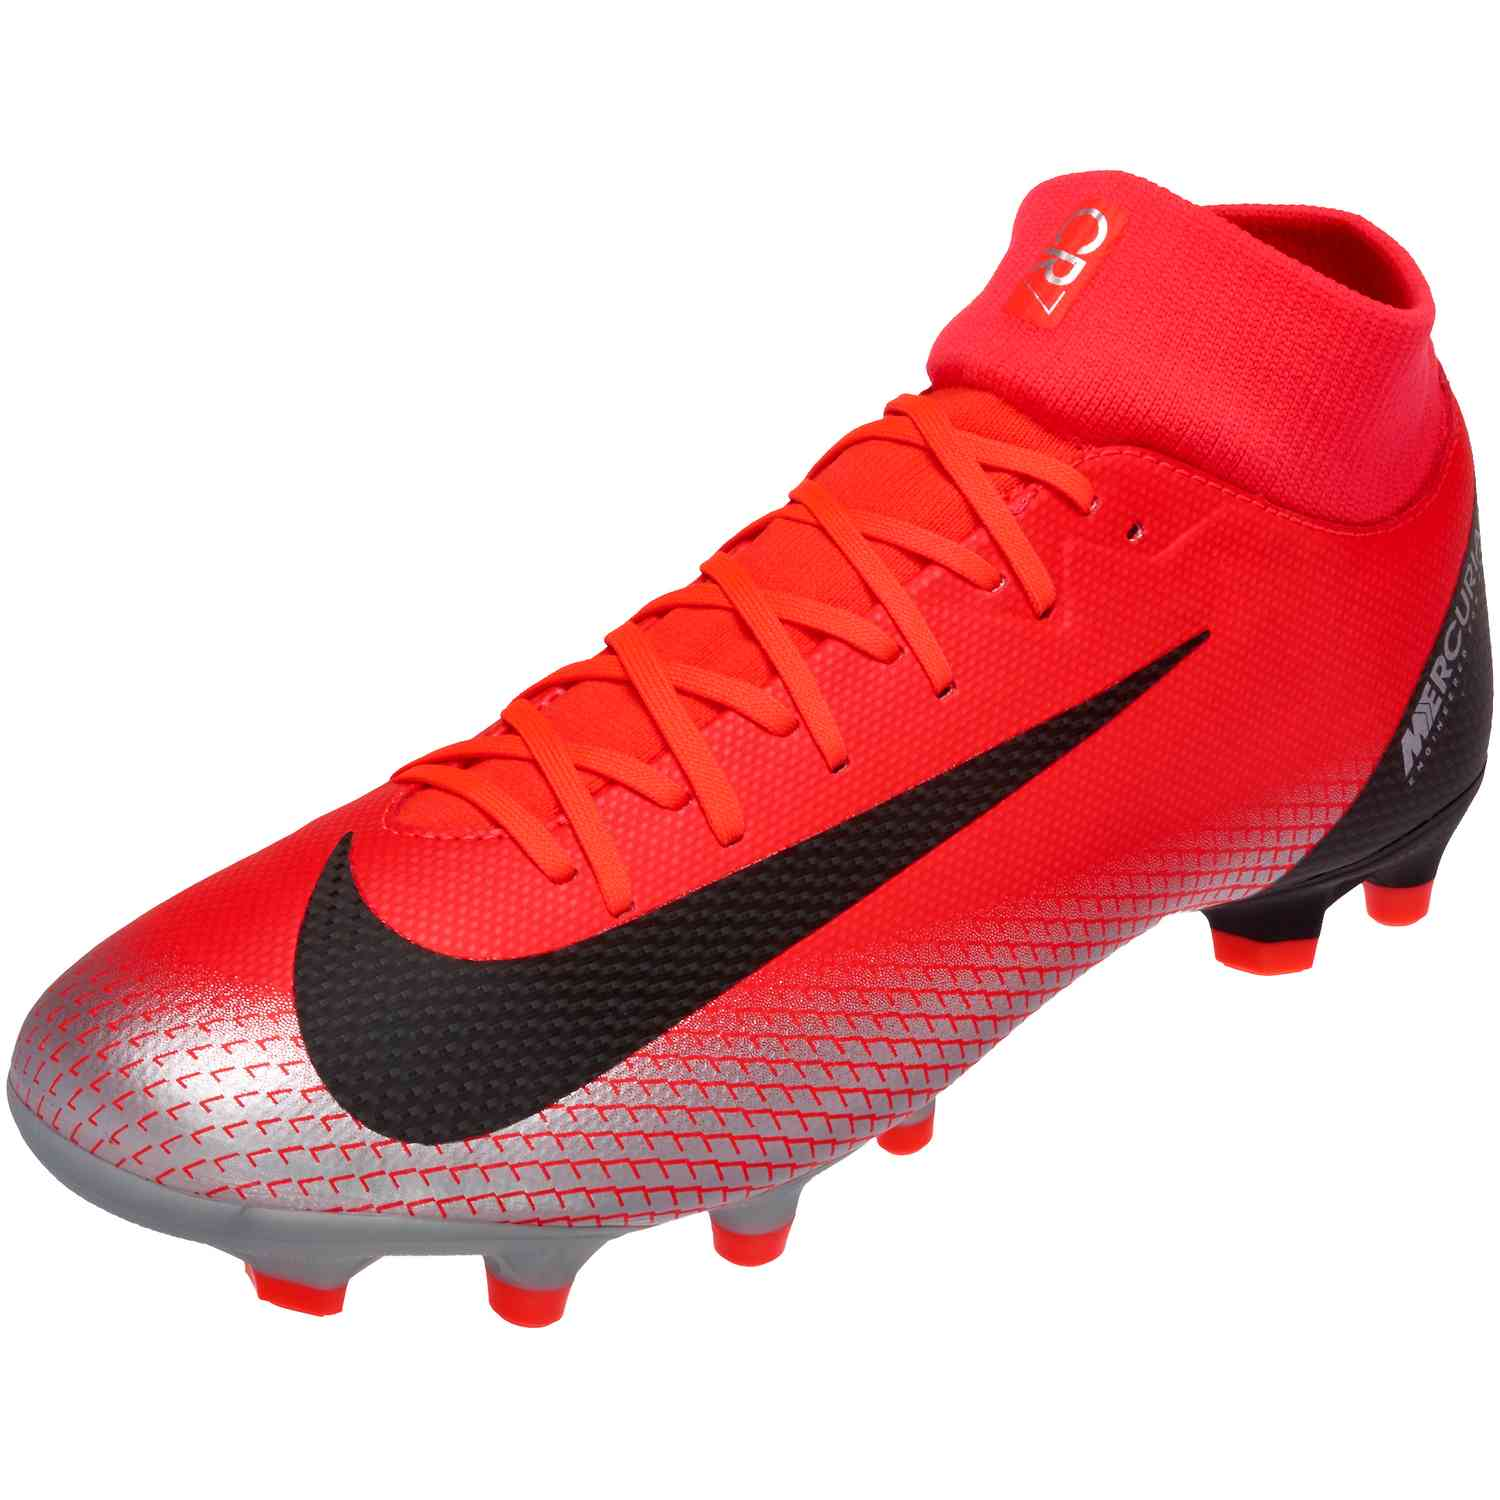 Nike Mercurial Superfly 6 Academy FG – CR7 – Bright  Crimson Black Chrome Dark Grey 06191674c7db